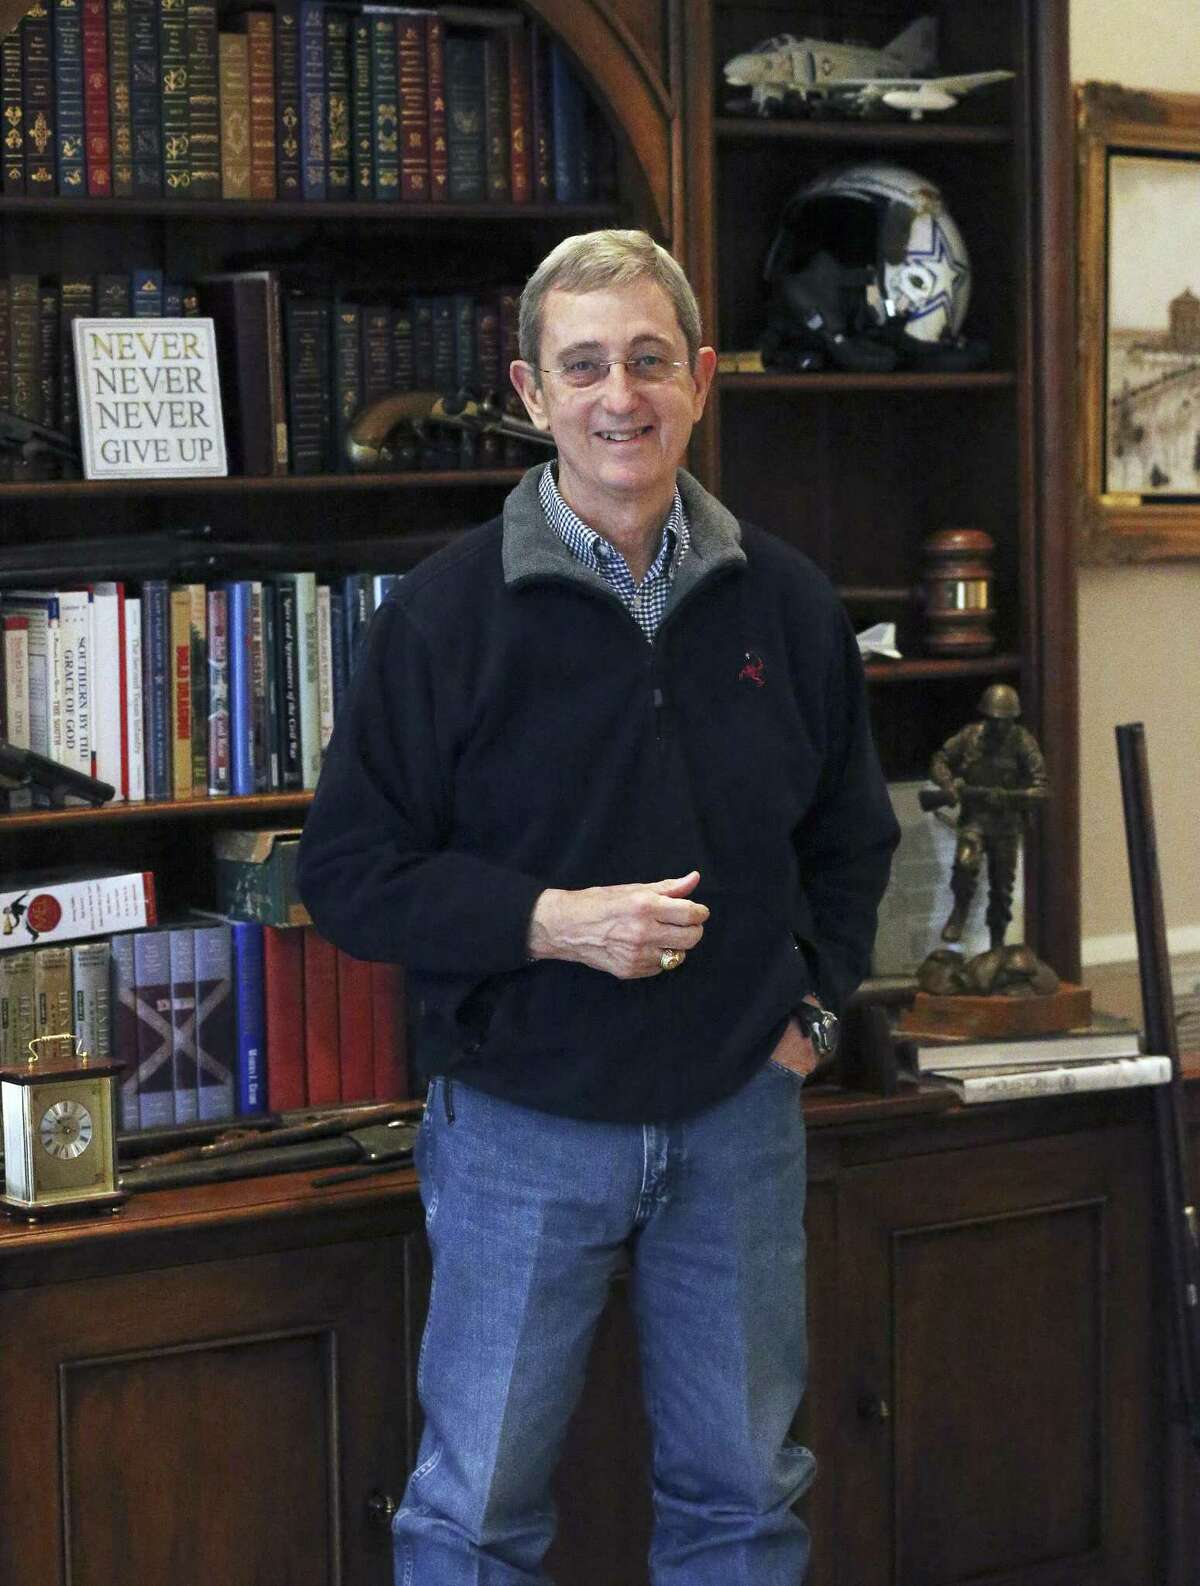 Jerry Patterson, candidate for Texas Land Commissioner, stands by a bookcase at his home in Austin on February 7, 2018.